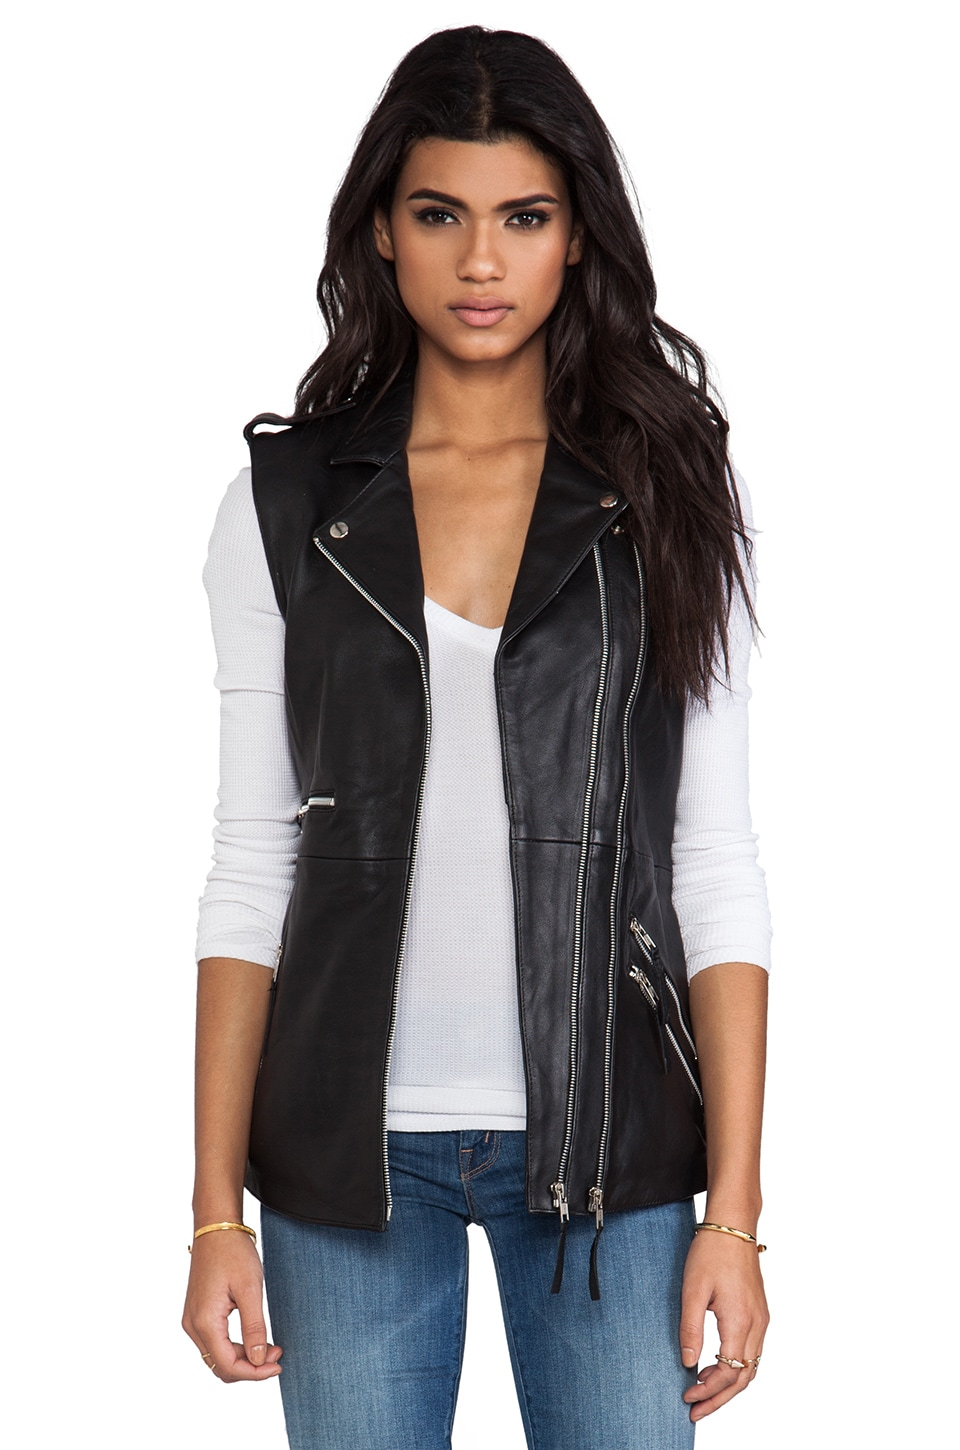 Viparo Oversized Leather Biked Vest in Black